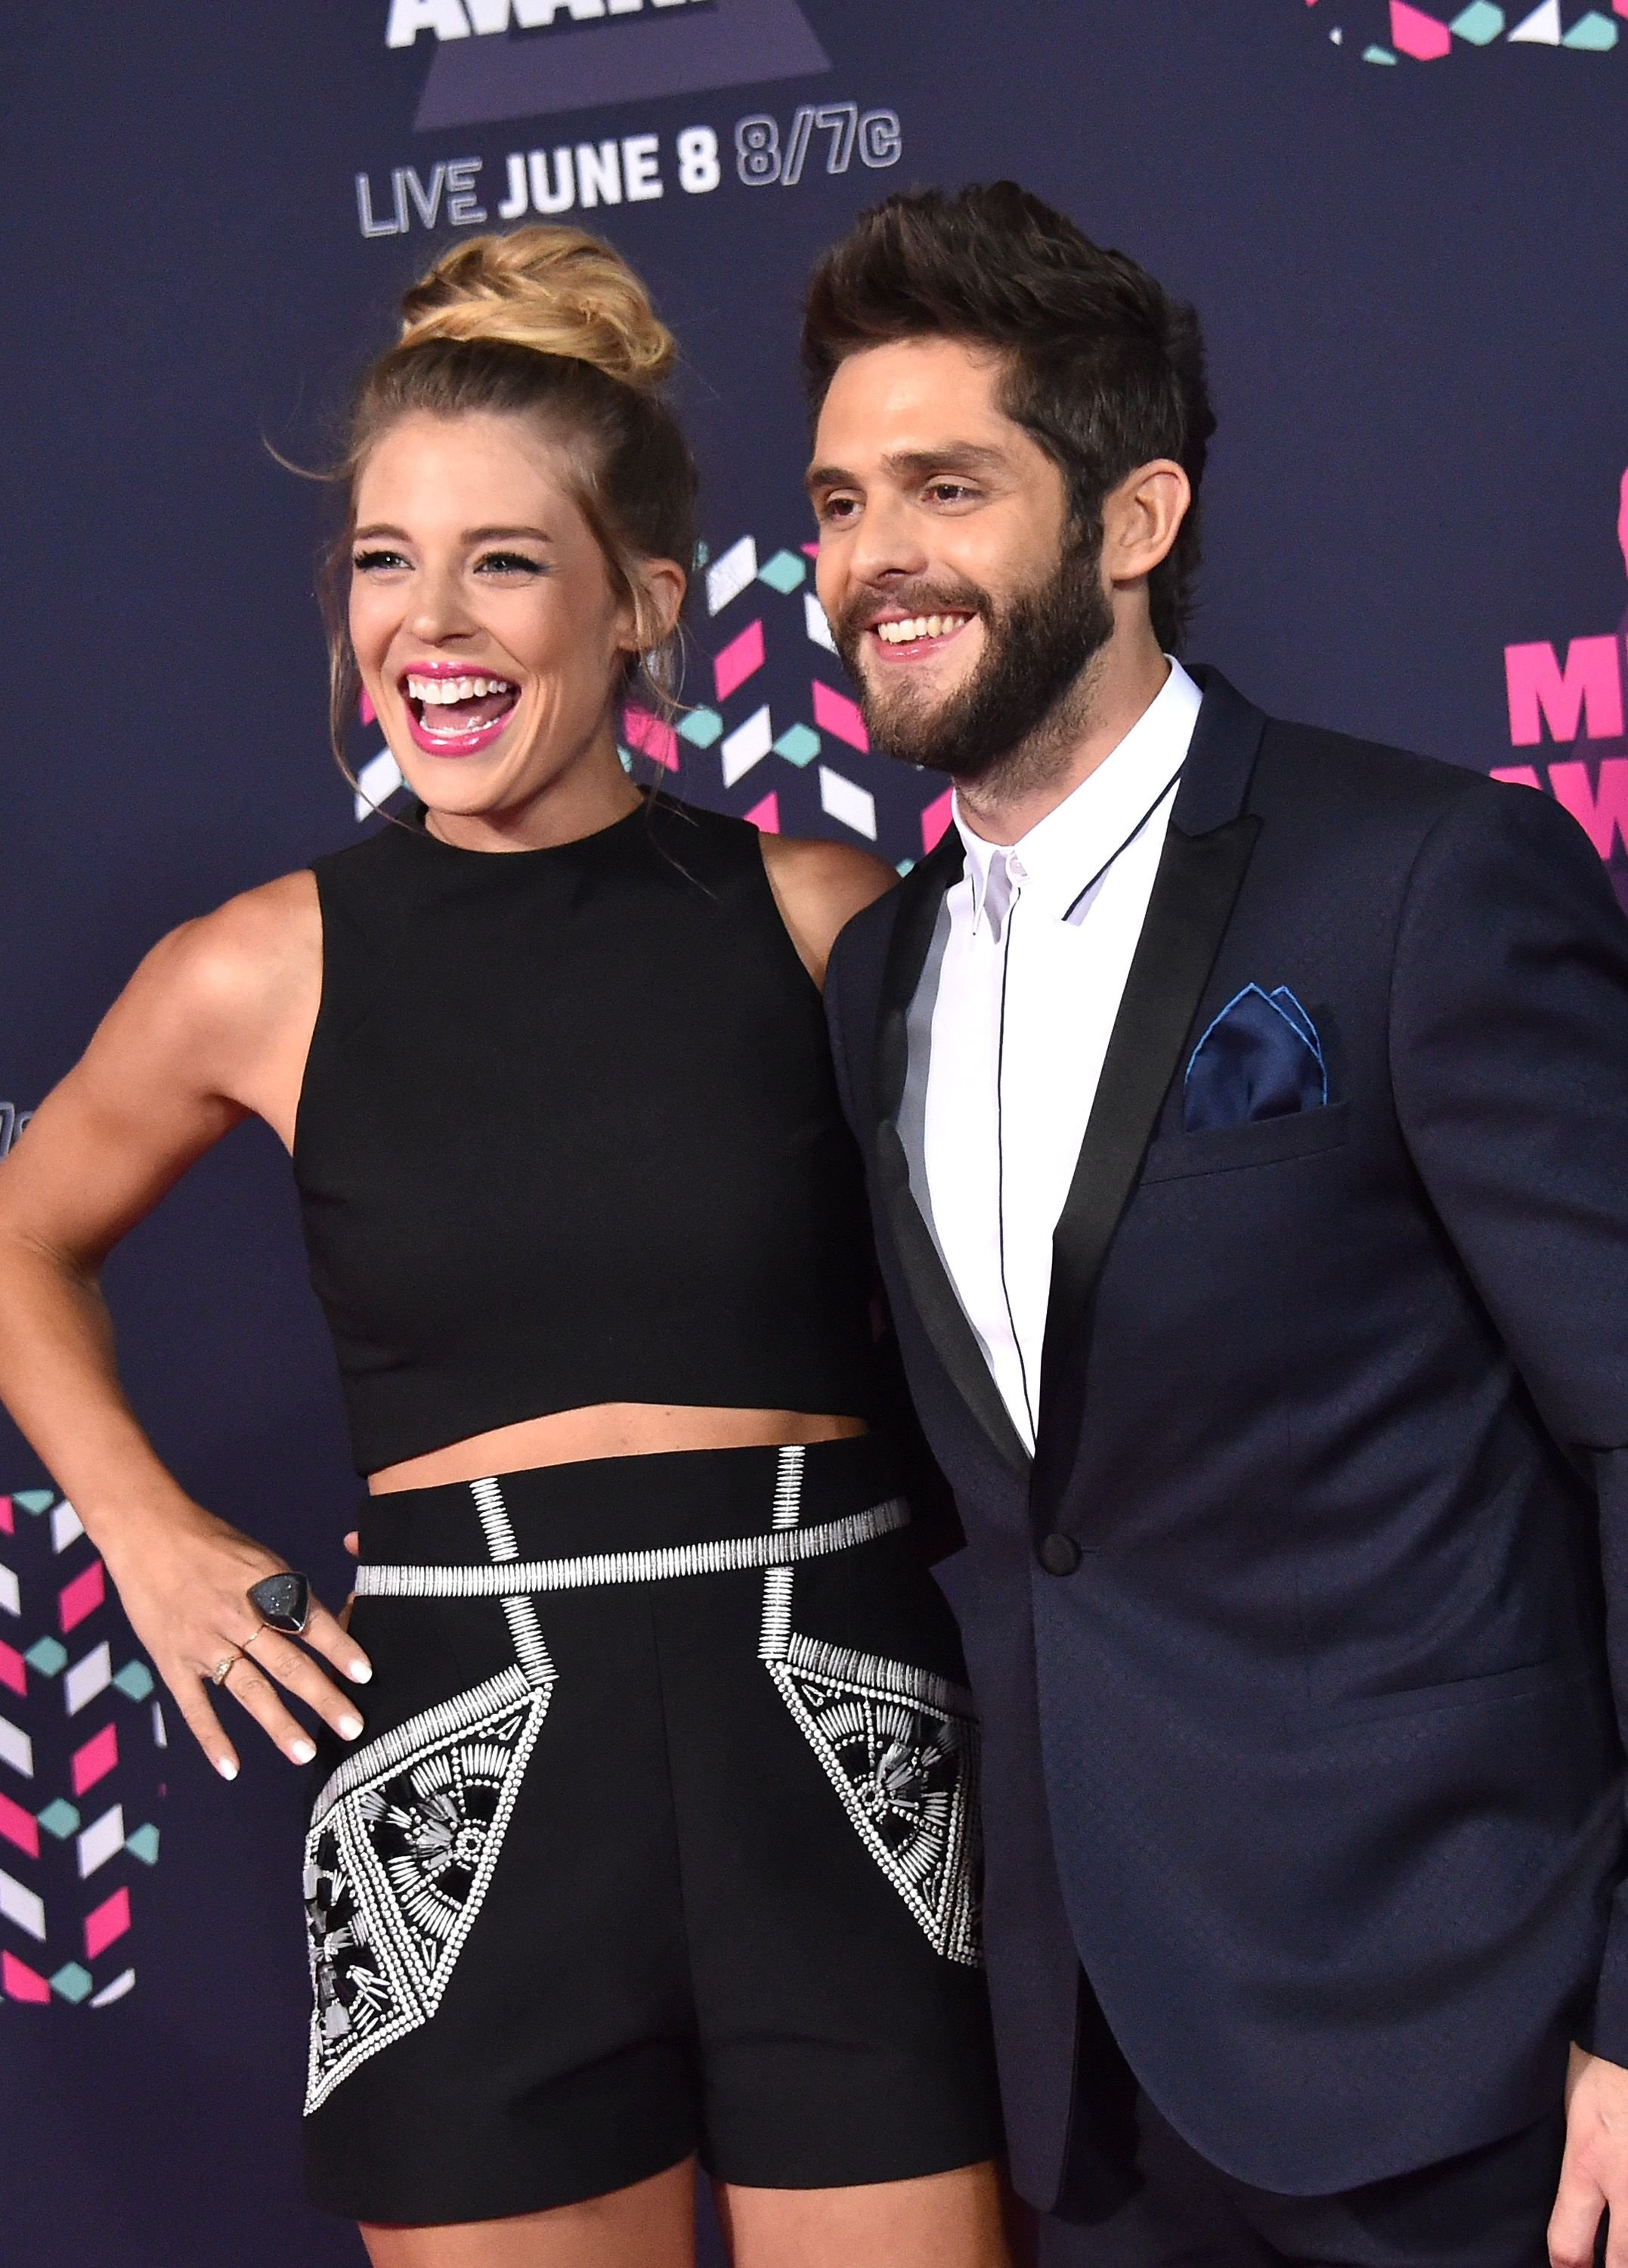 Thomas Rhett and wife Lauren Akins at the CMT Music Awards on June 8, 2016 | Photo: Getty Images